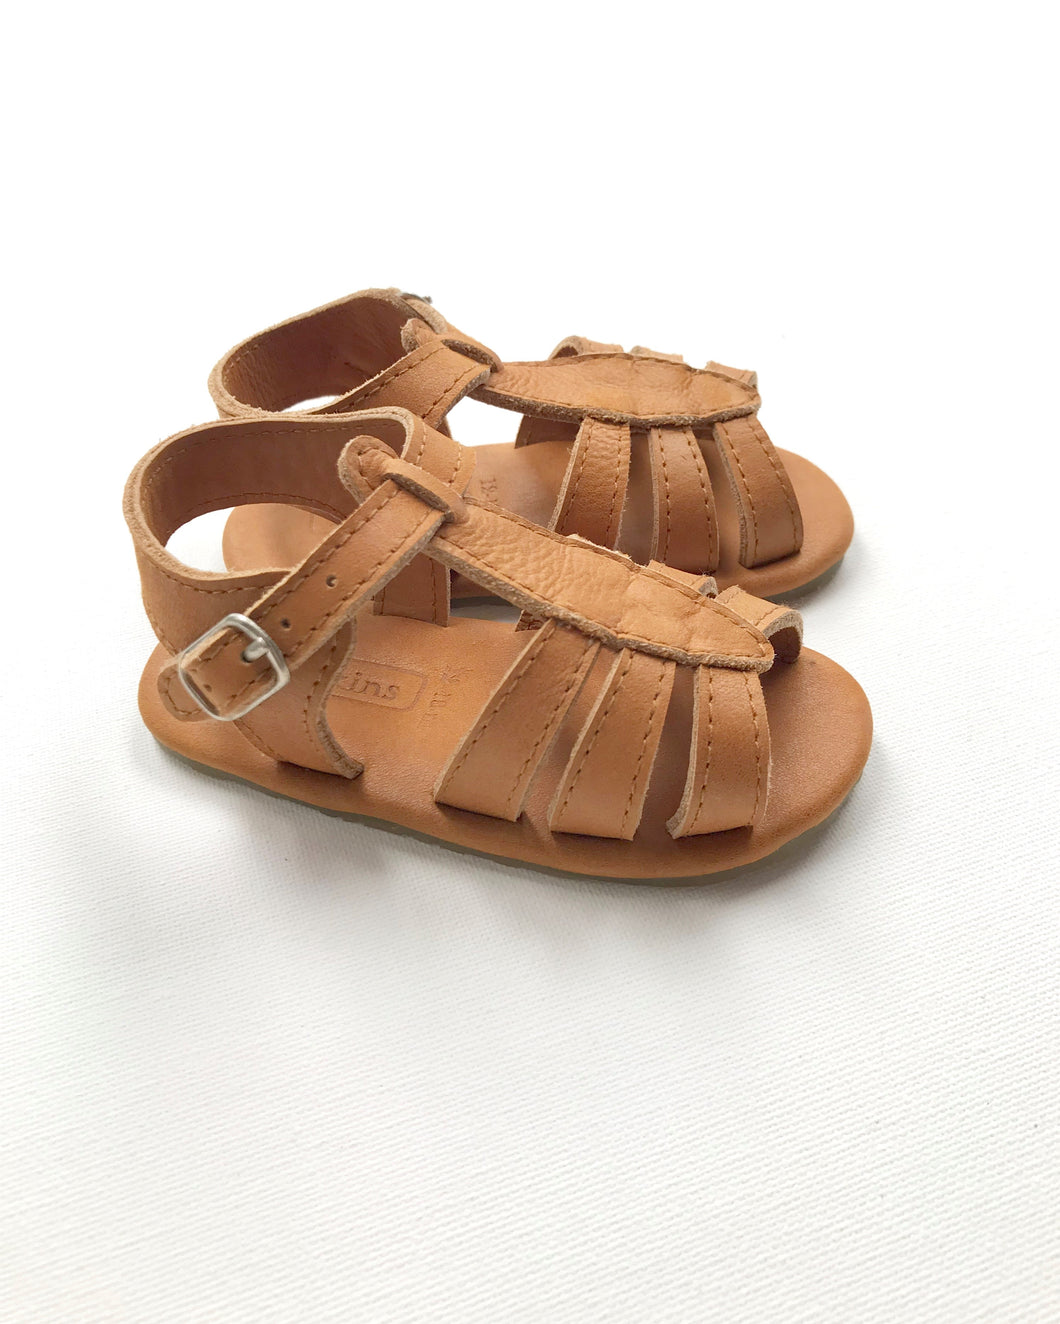 Noemi T-bar Sandal | Caramel Leather